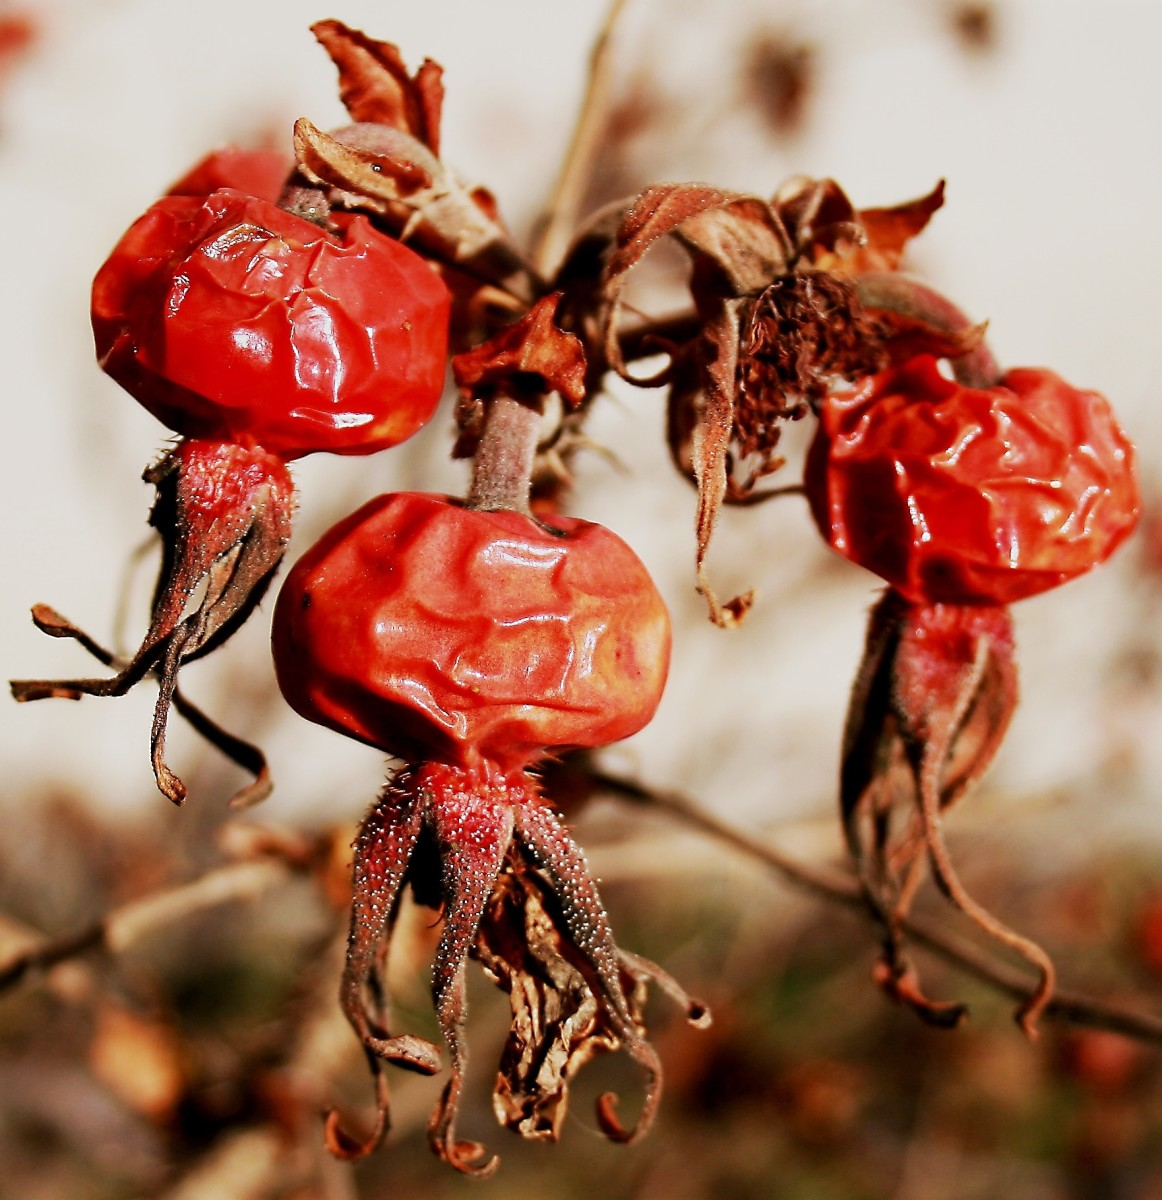 Rose hips late in the season